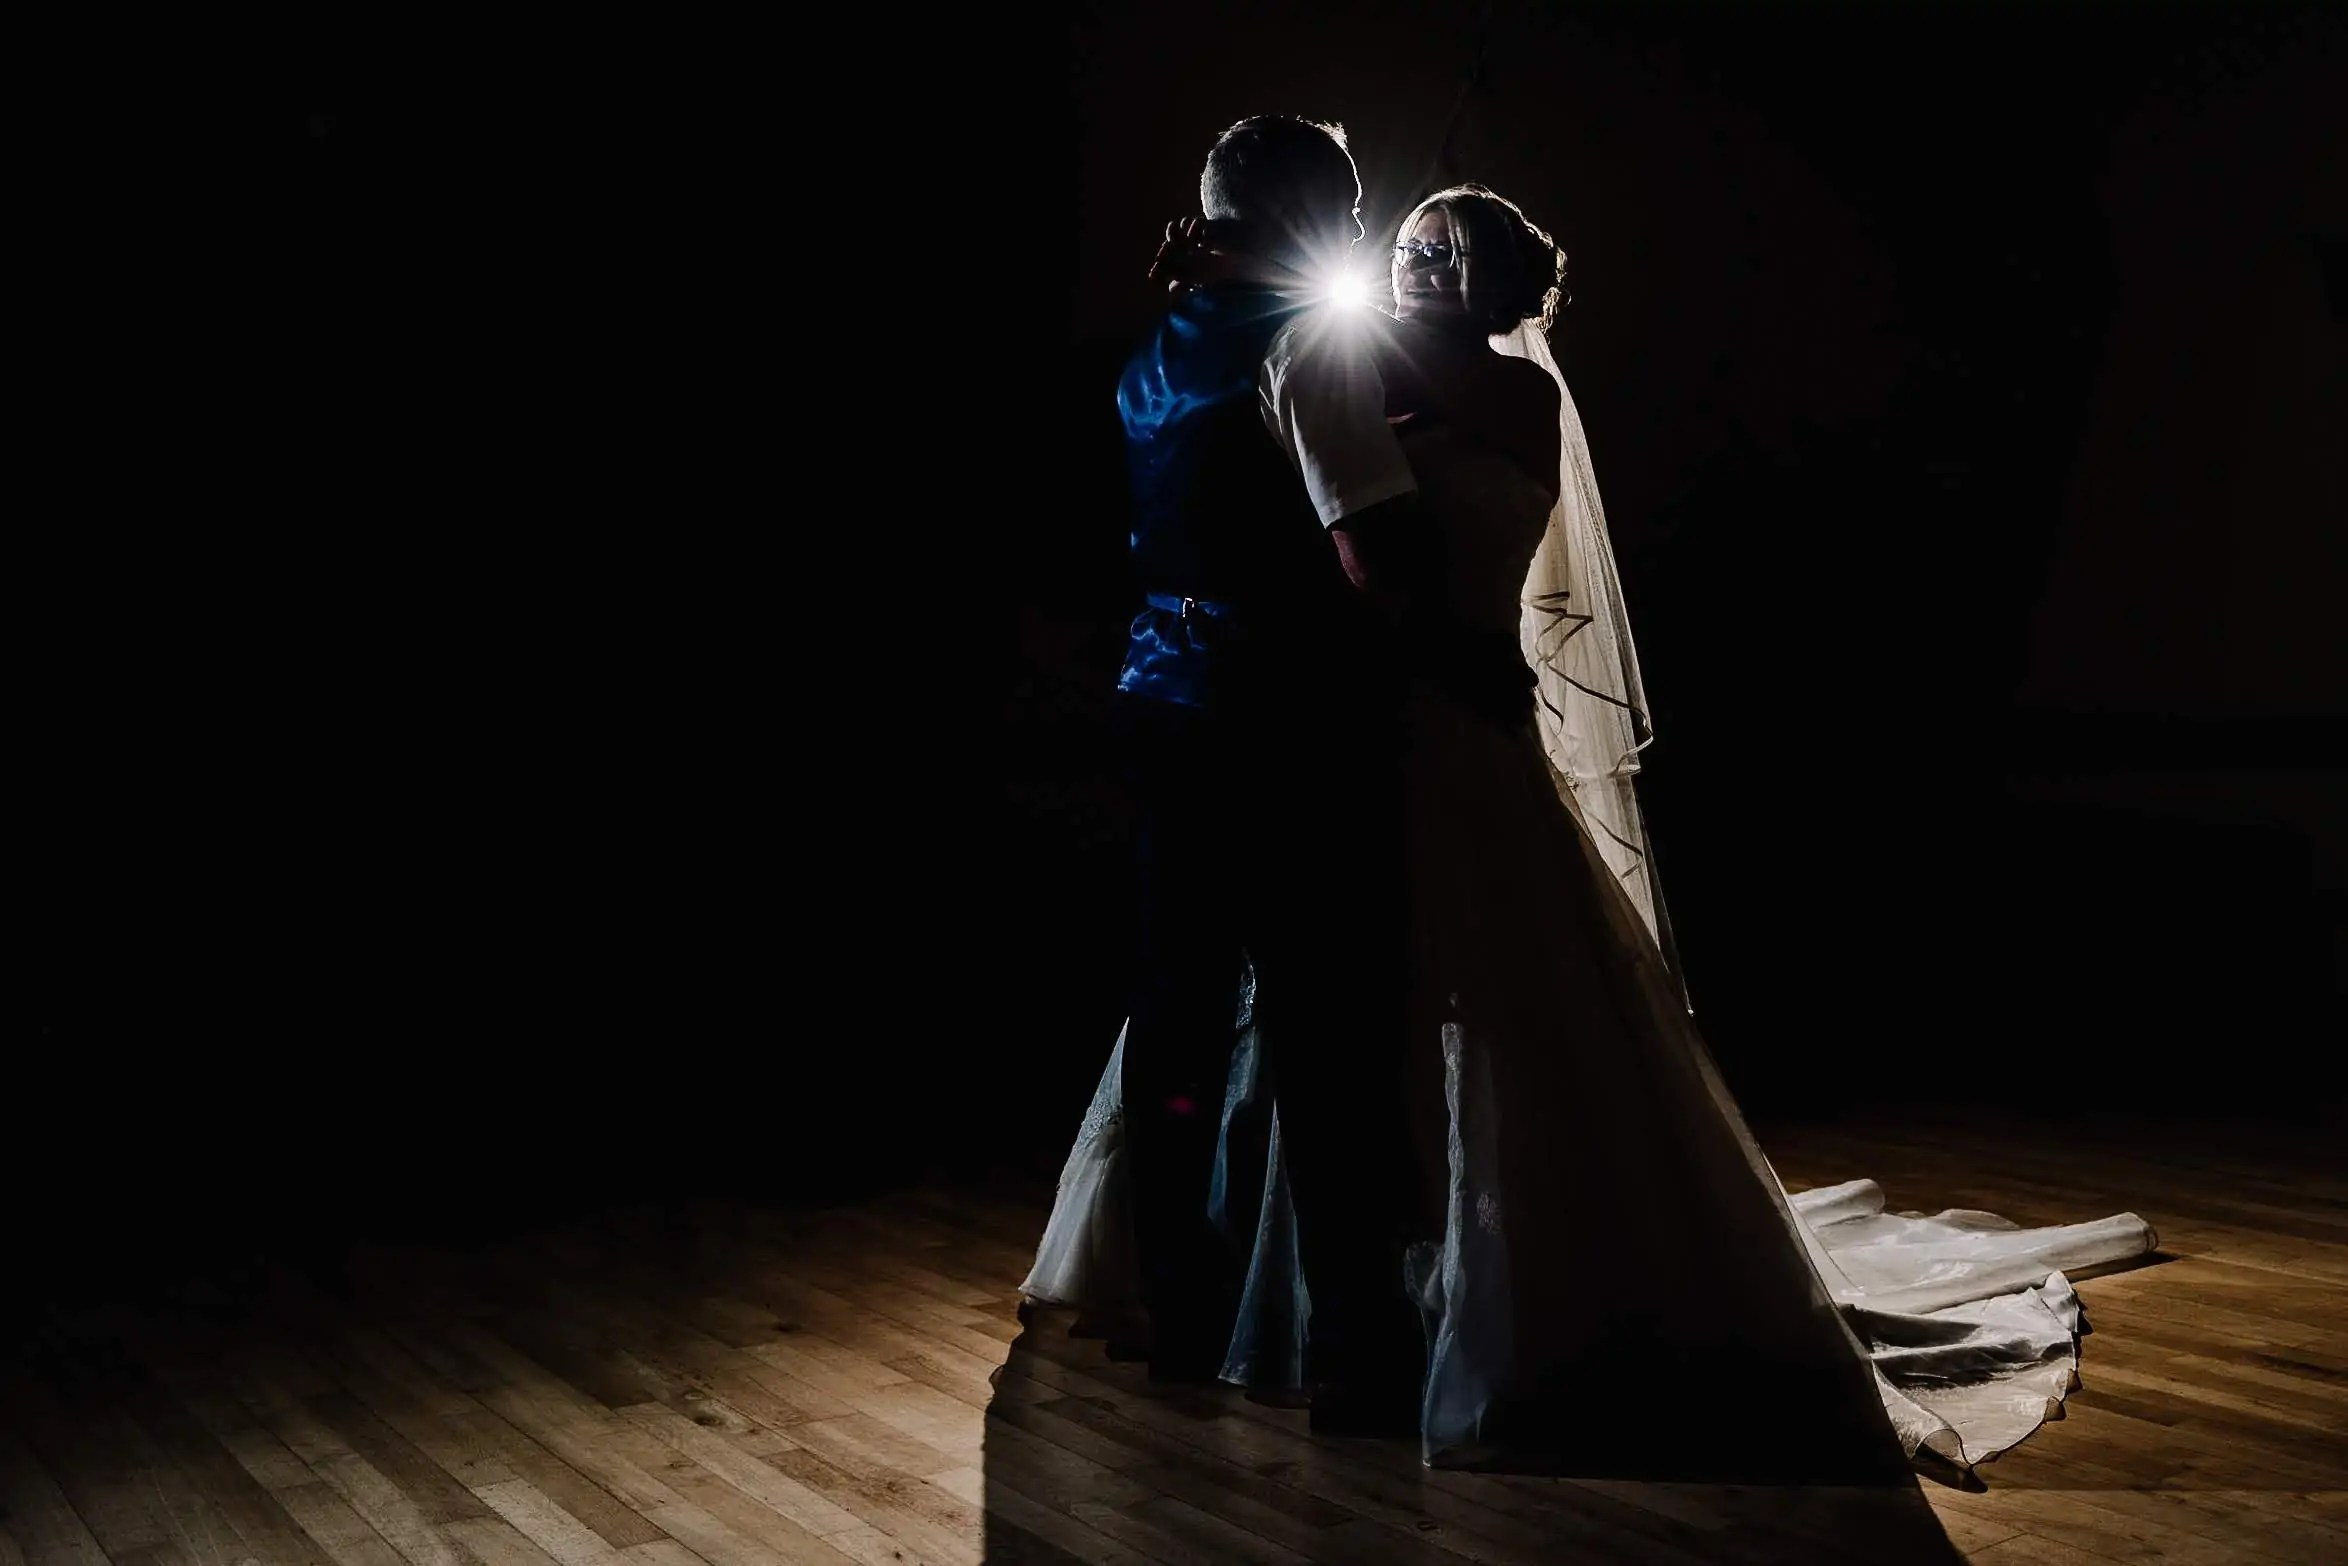 A bride and groom having their first dance at their wedding reception